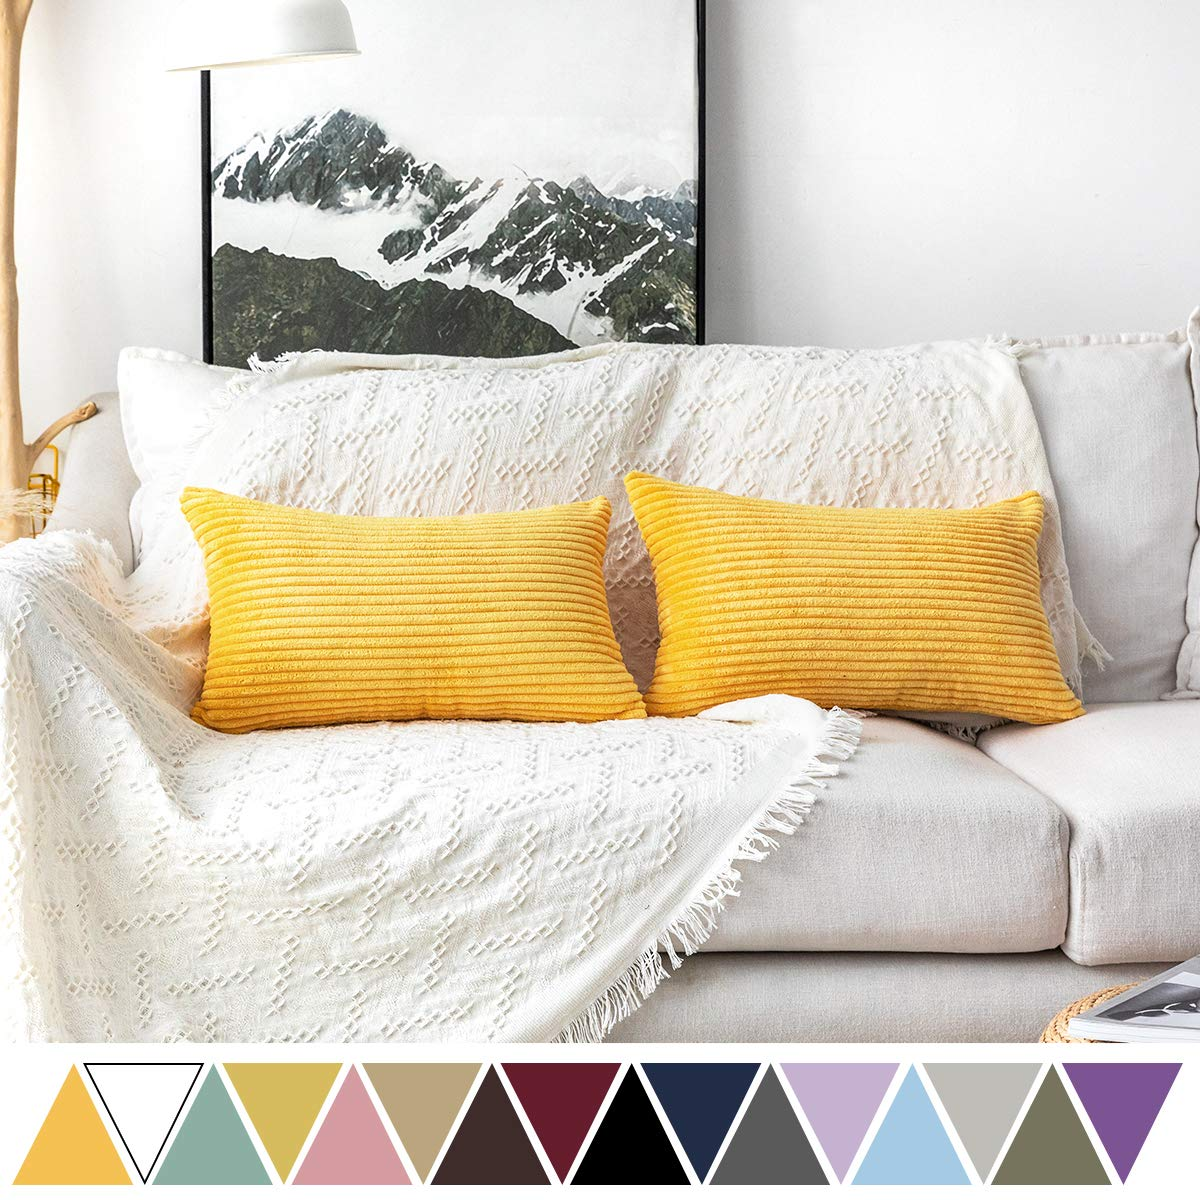 MUDILY Pack of 2 Soft Velvet Striped Corduroy Cute Decorative Oblong Throw Pillow Covers Cushion Cases Pillow Cases for Sofa Car Sunflower Yellow 12 x 20 inch 30 x 50 cm